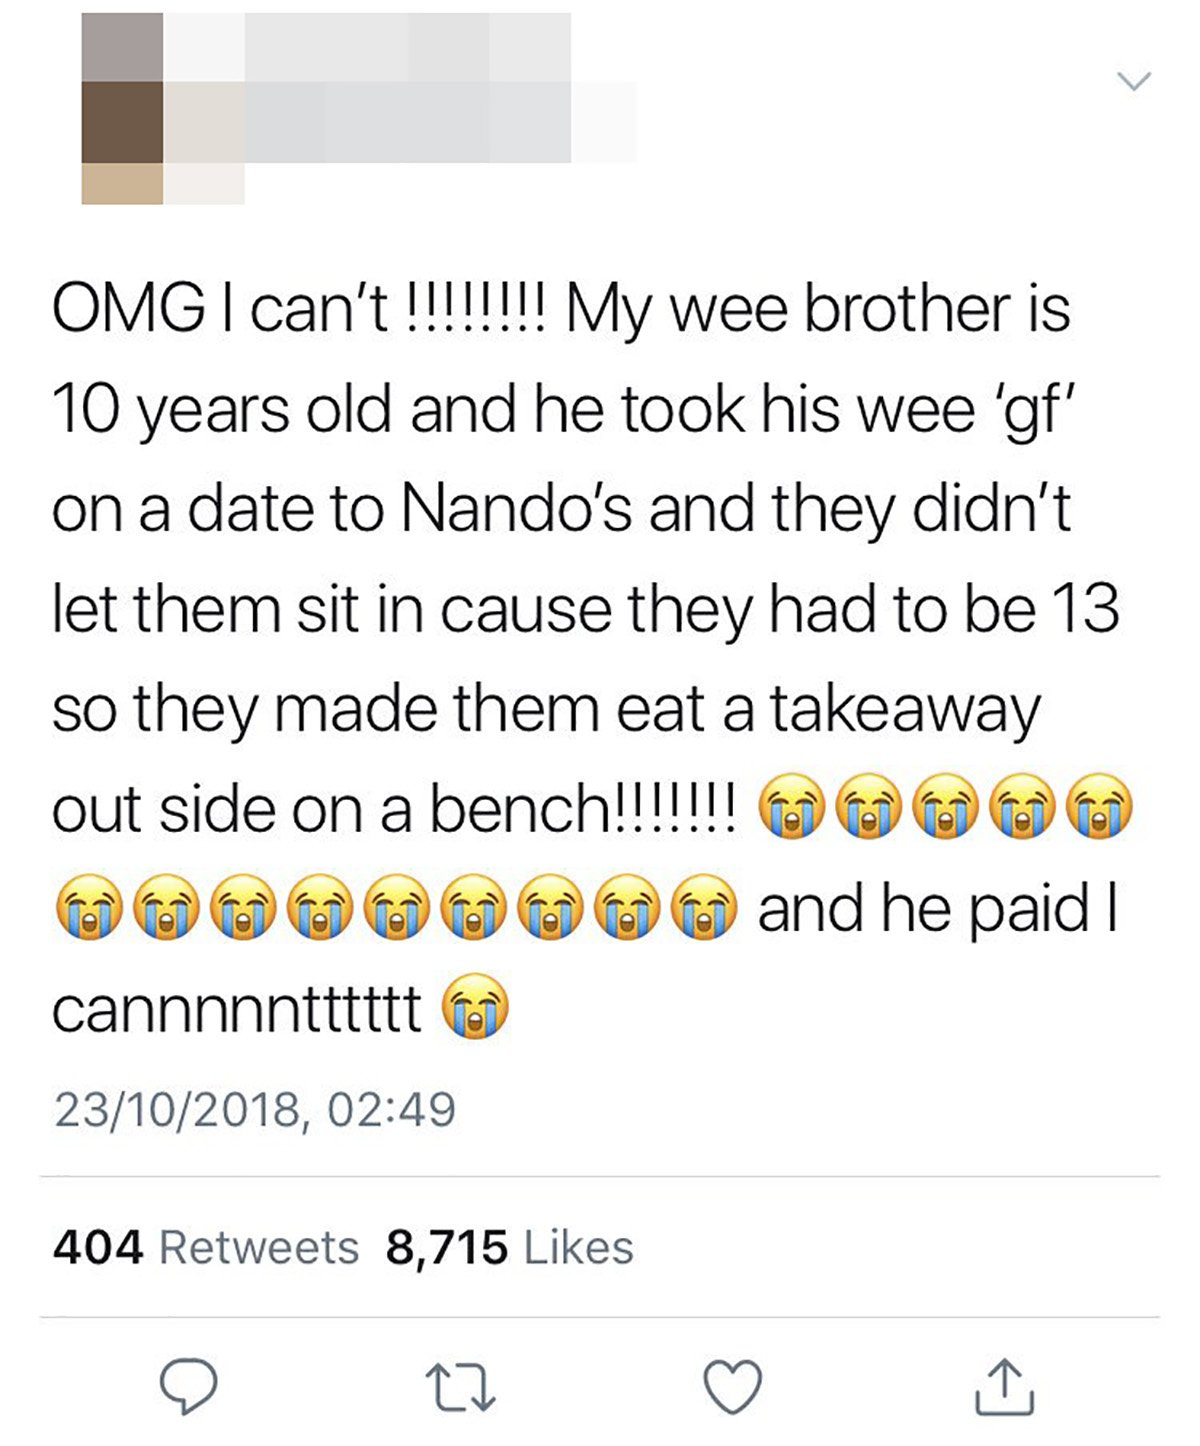 METRO GRAB VIA TWITTER A YOUNG lad has gone viral on social media after he and his ???gf??? were asked to leave Nando???s while on a date. The 10-year-old smoothie took his girlfriend to the restaurant in Edinburgh but had to eat a takeaway meal outside, according to his sister on Twitter. https://twitter.com/Luisastewaart https://twitter.com/KarlGarratty/status/1054645724296531969